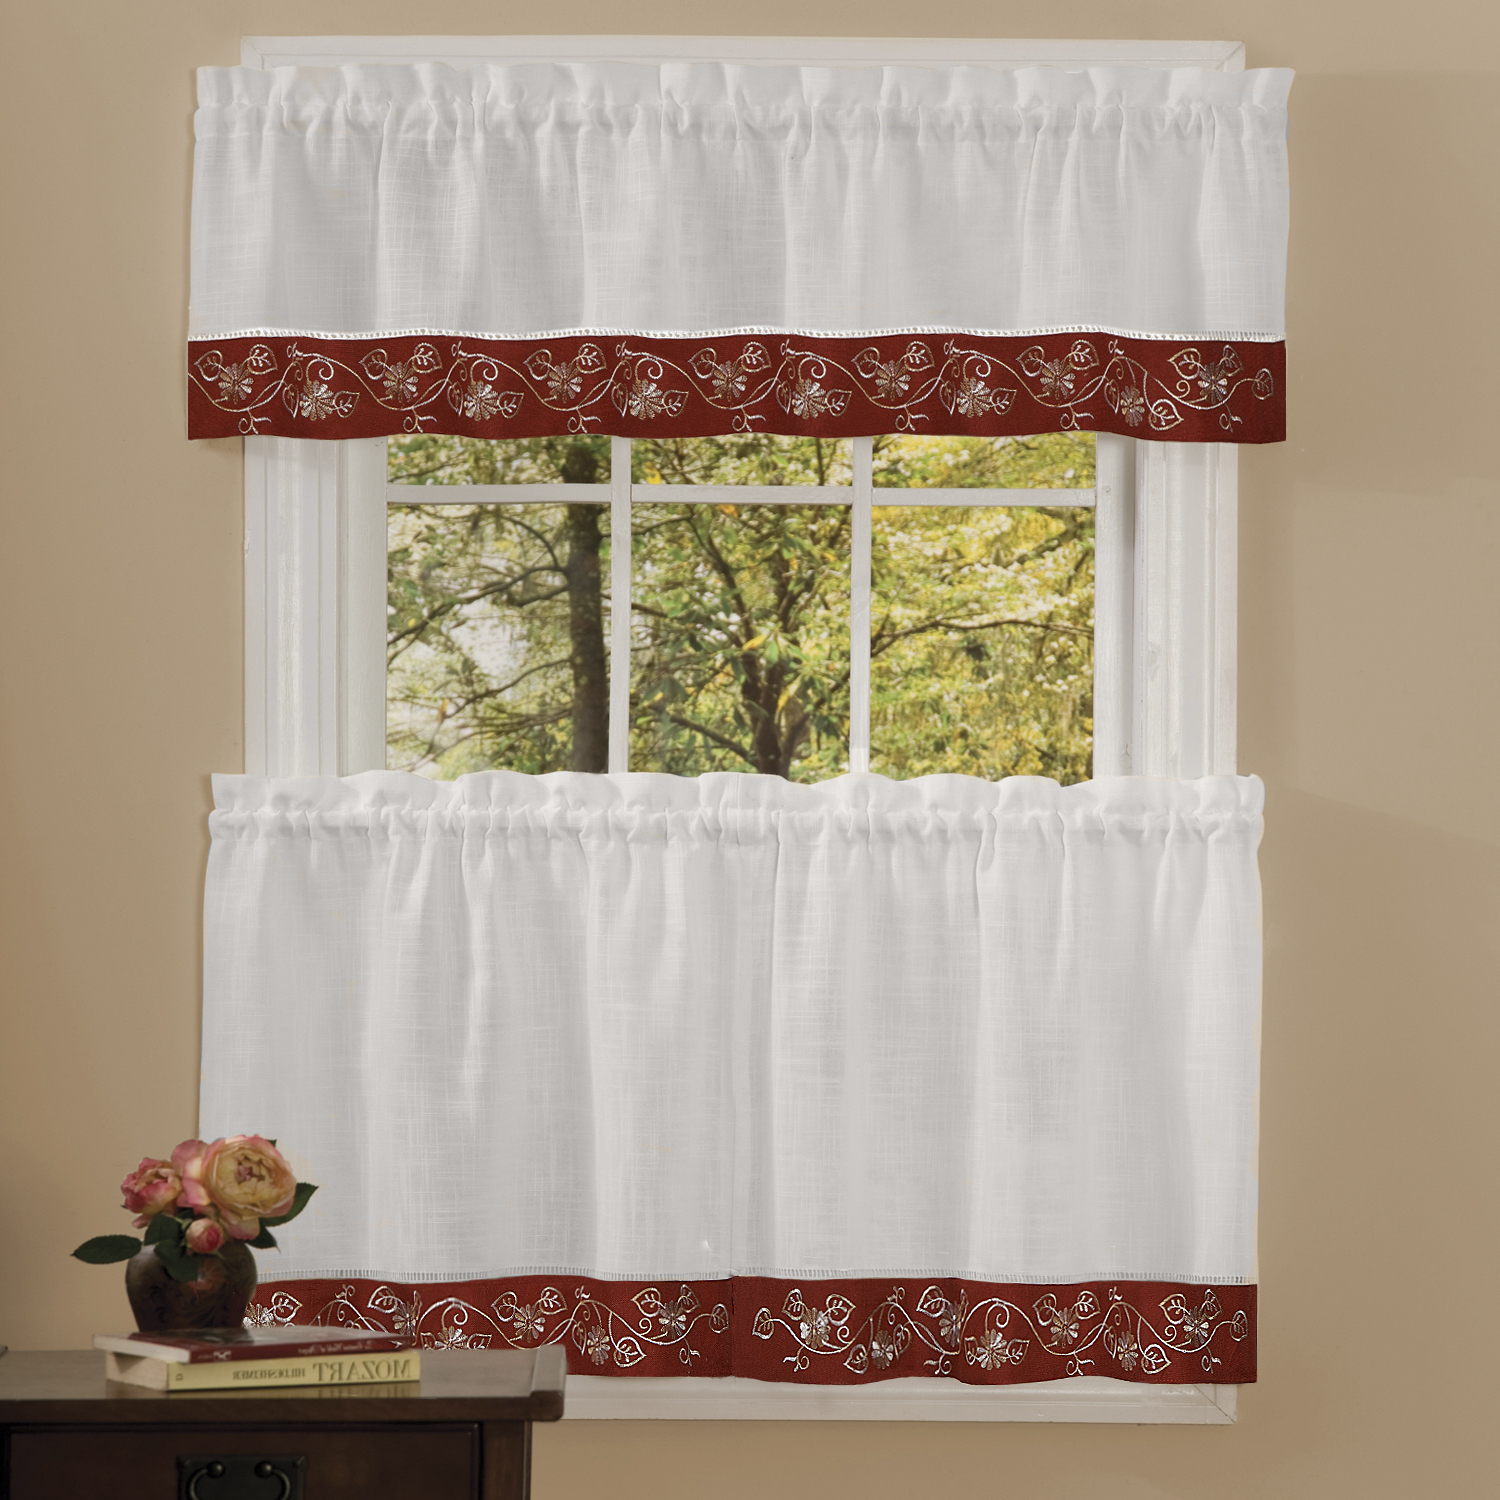 Details About Oakwood Linen Style Kitchen Window Curtains Tiers Or Valance  Burgundy For Most Popular Oakwood Linen Style Decorative Curtain Tier Sets (View 7 of 20)